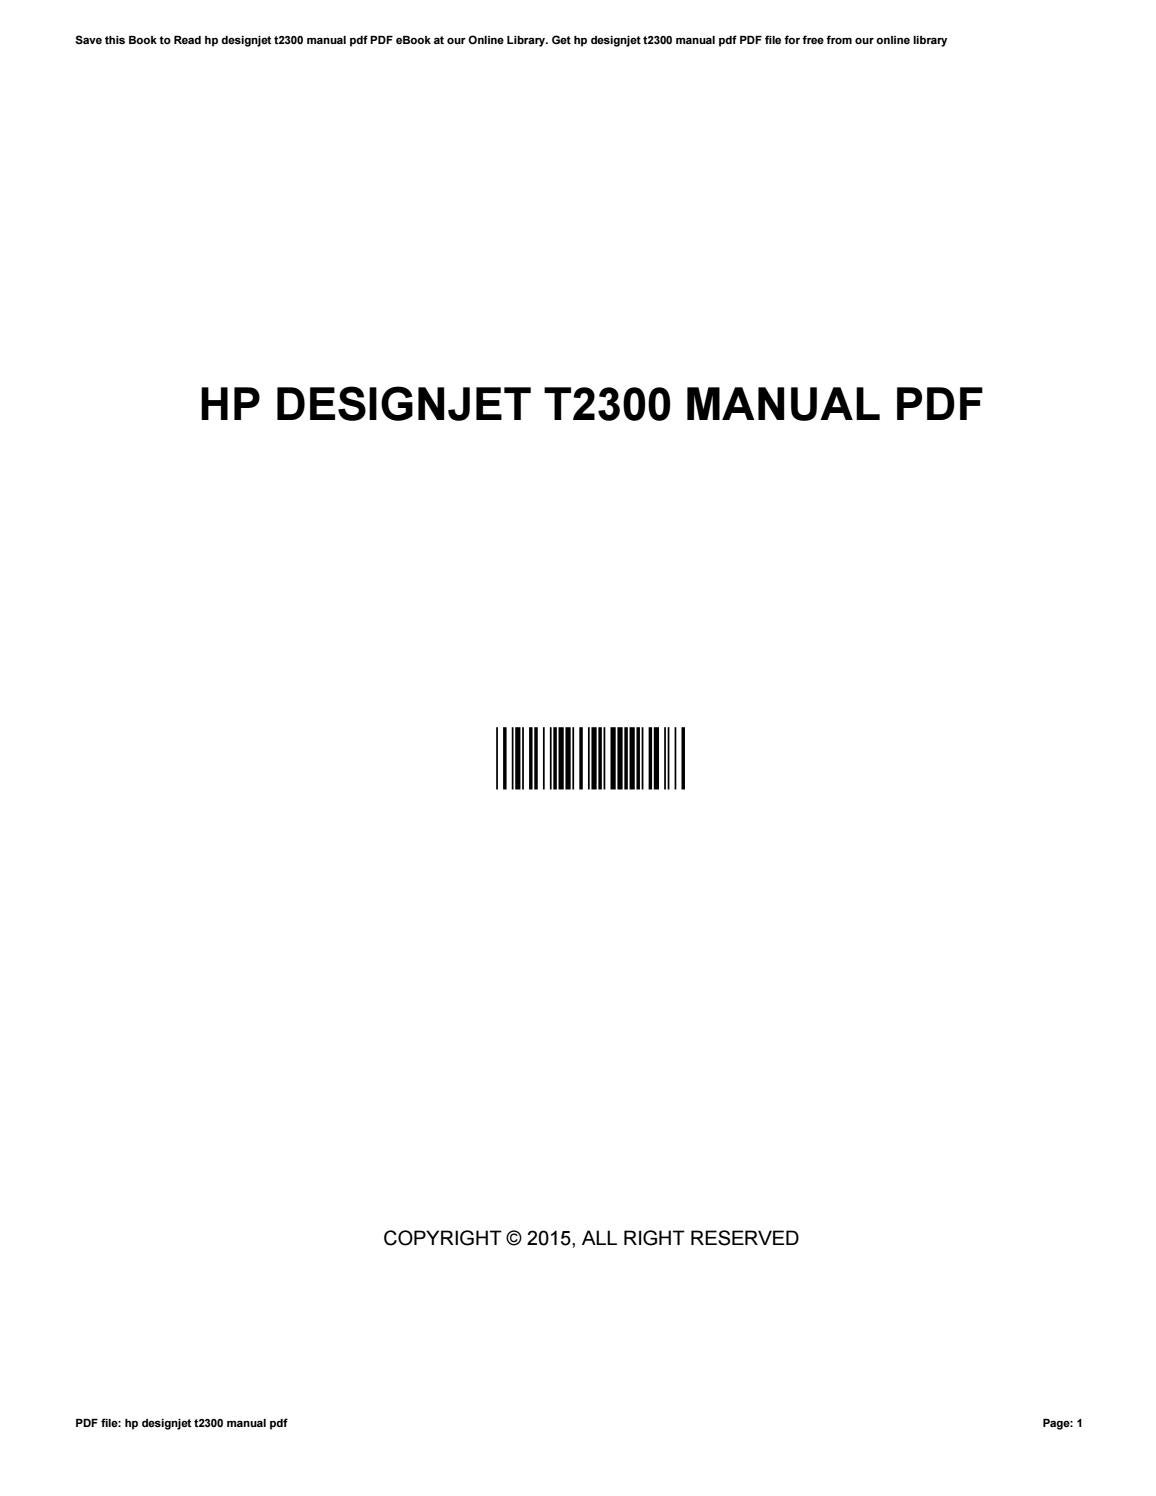 hp designjet t2300 service manual